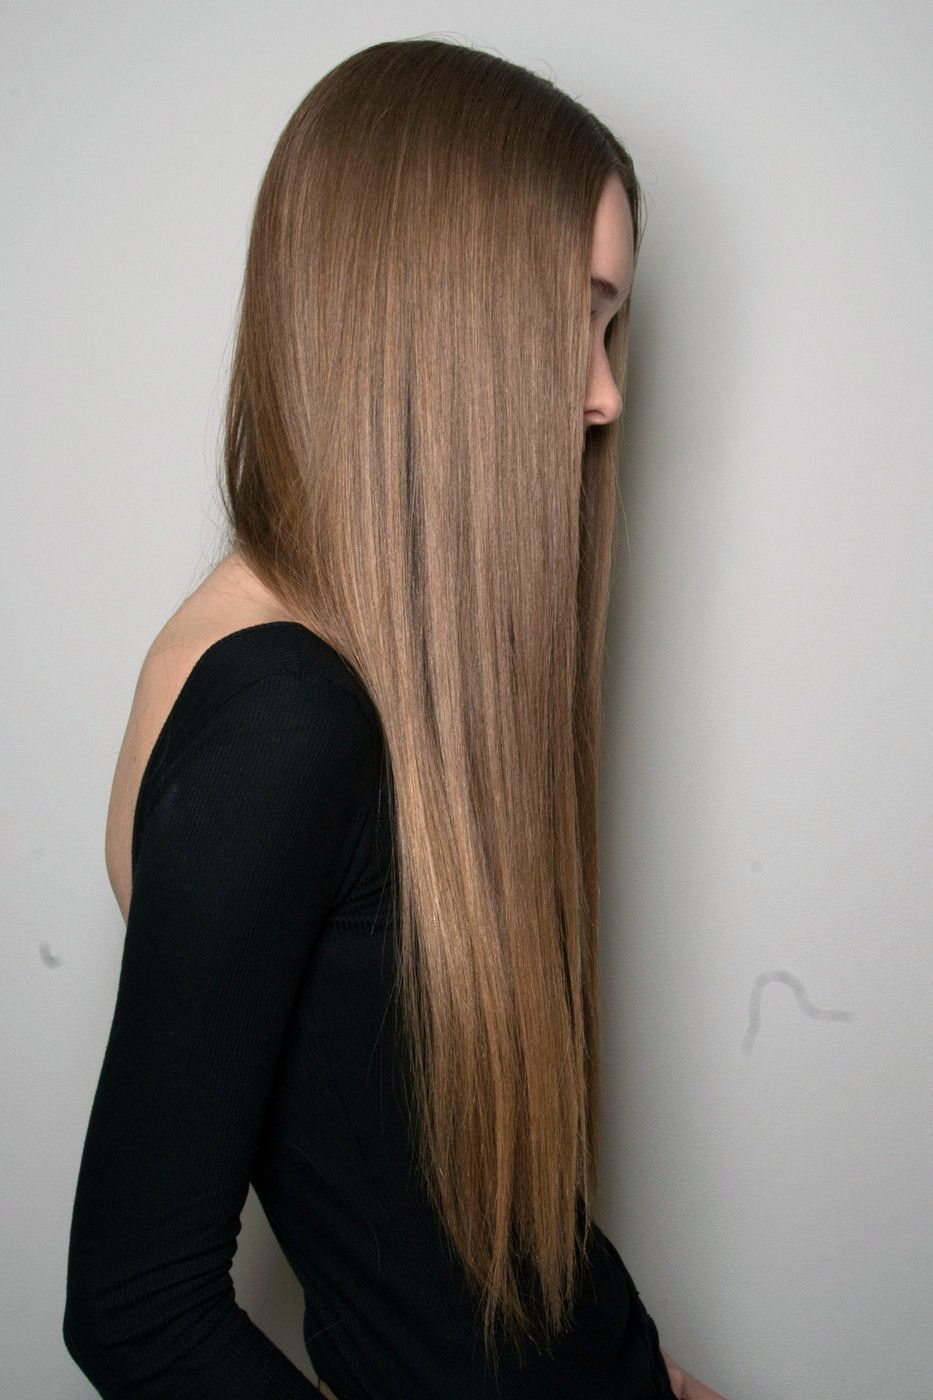 Pin by amanda desquirrel on long hair inspiration pinterest